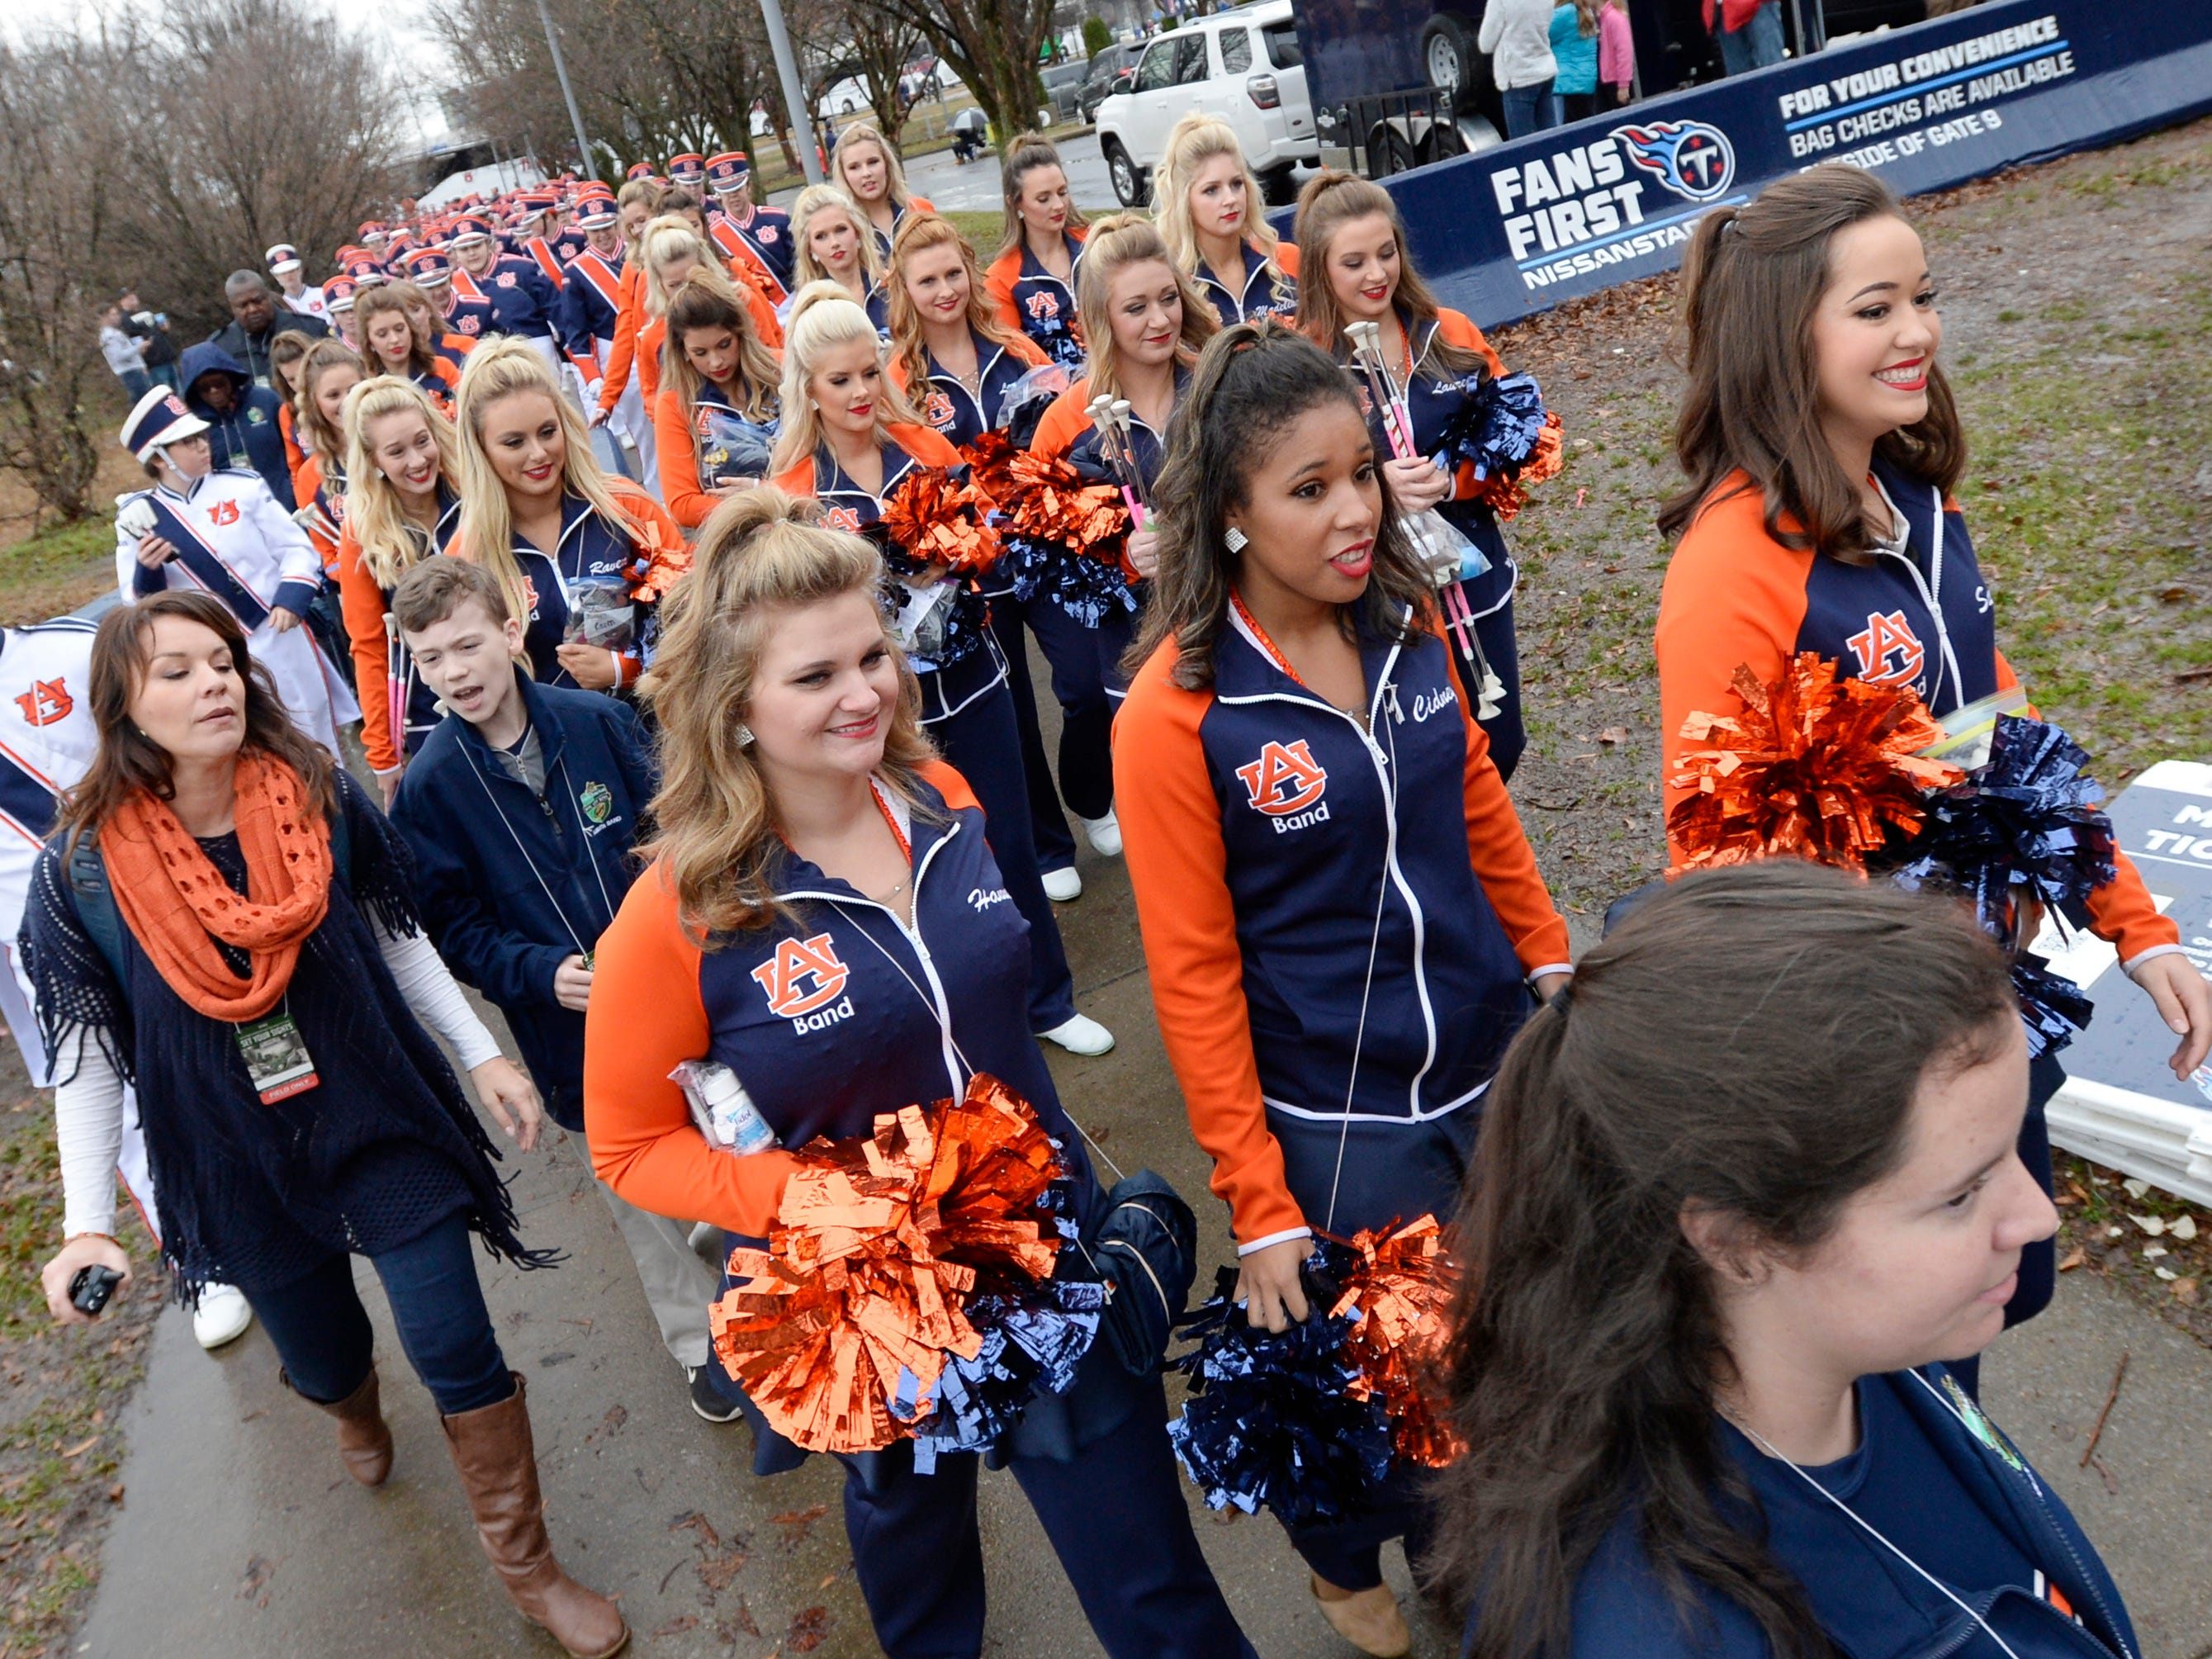 Auburn cheerleaders and band arrive for the Music City Bowl NCAA college football game Friday, Dec. 28, 2018, at Nissan Stadium in Nashville, Tenn.